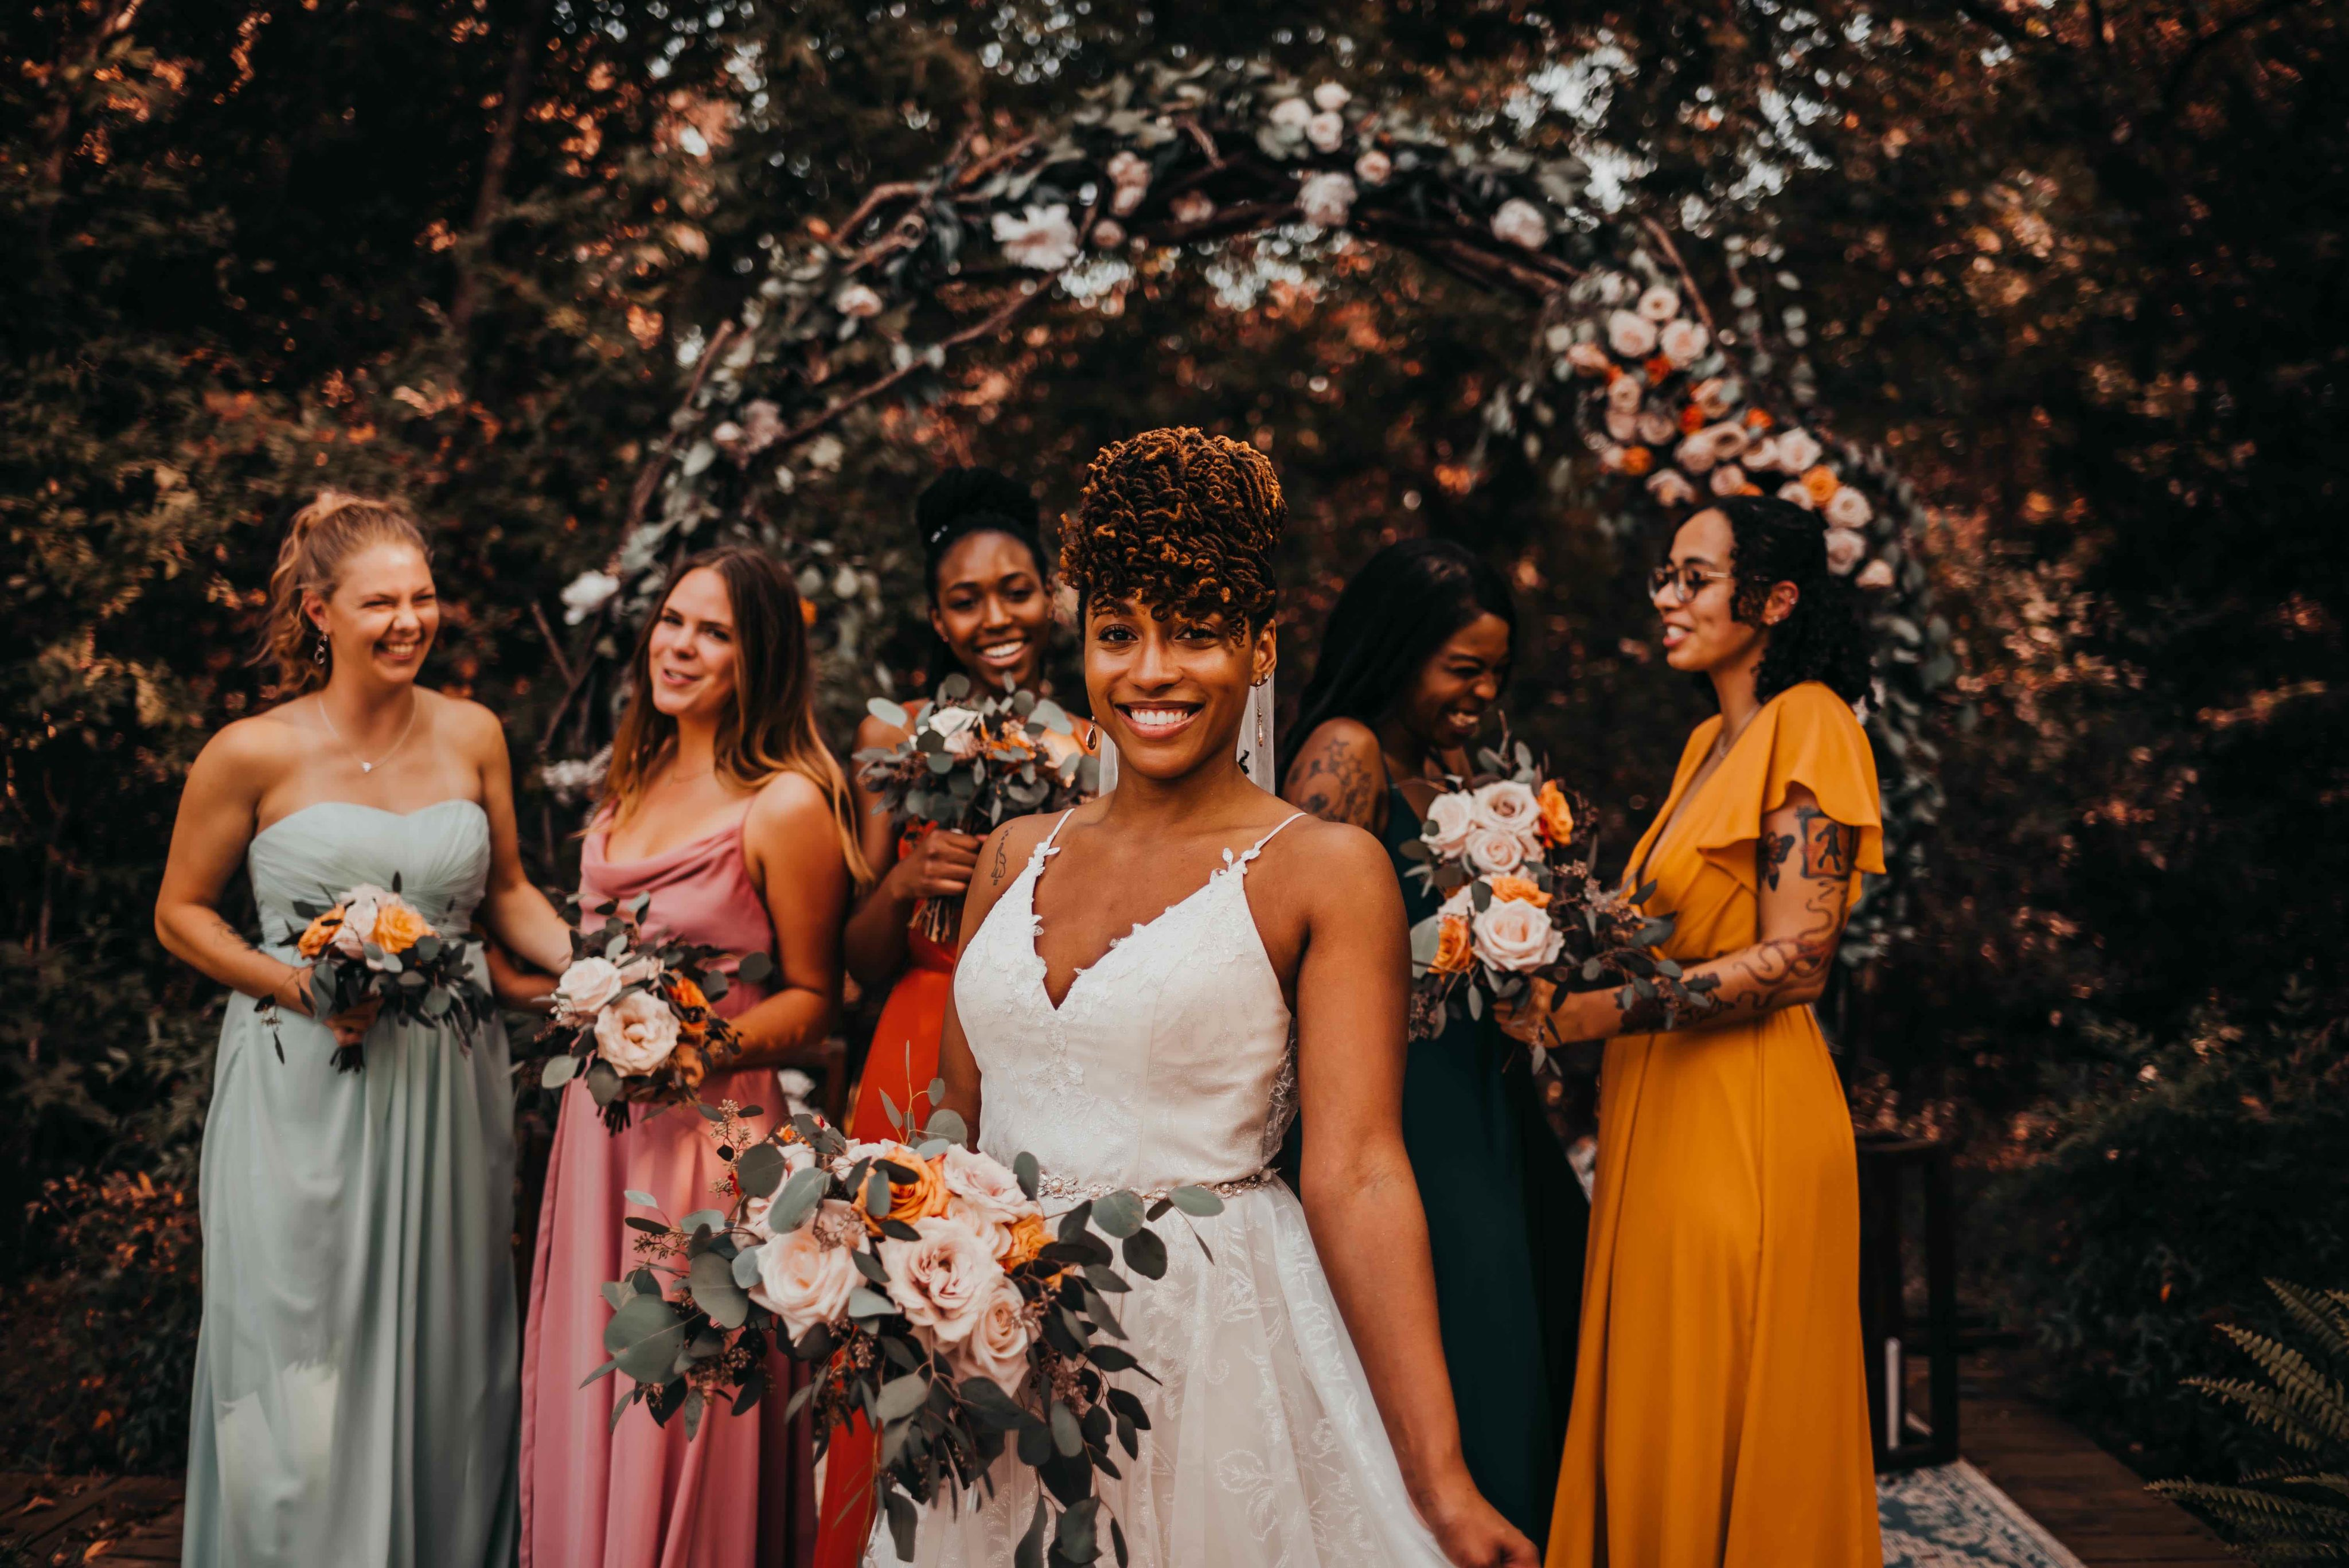 Elle with her bridal party